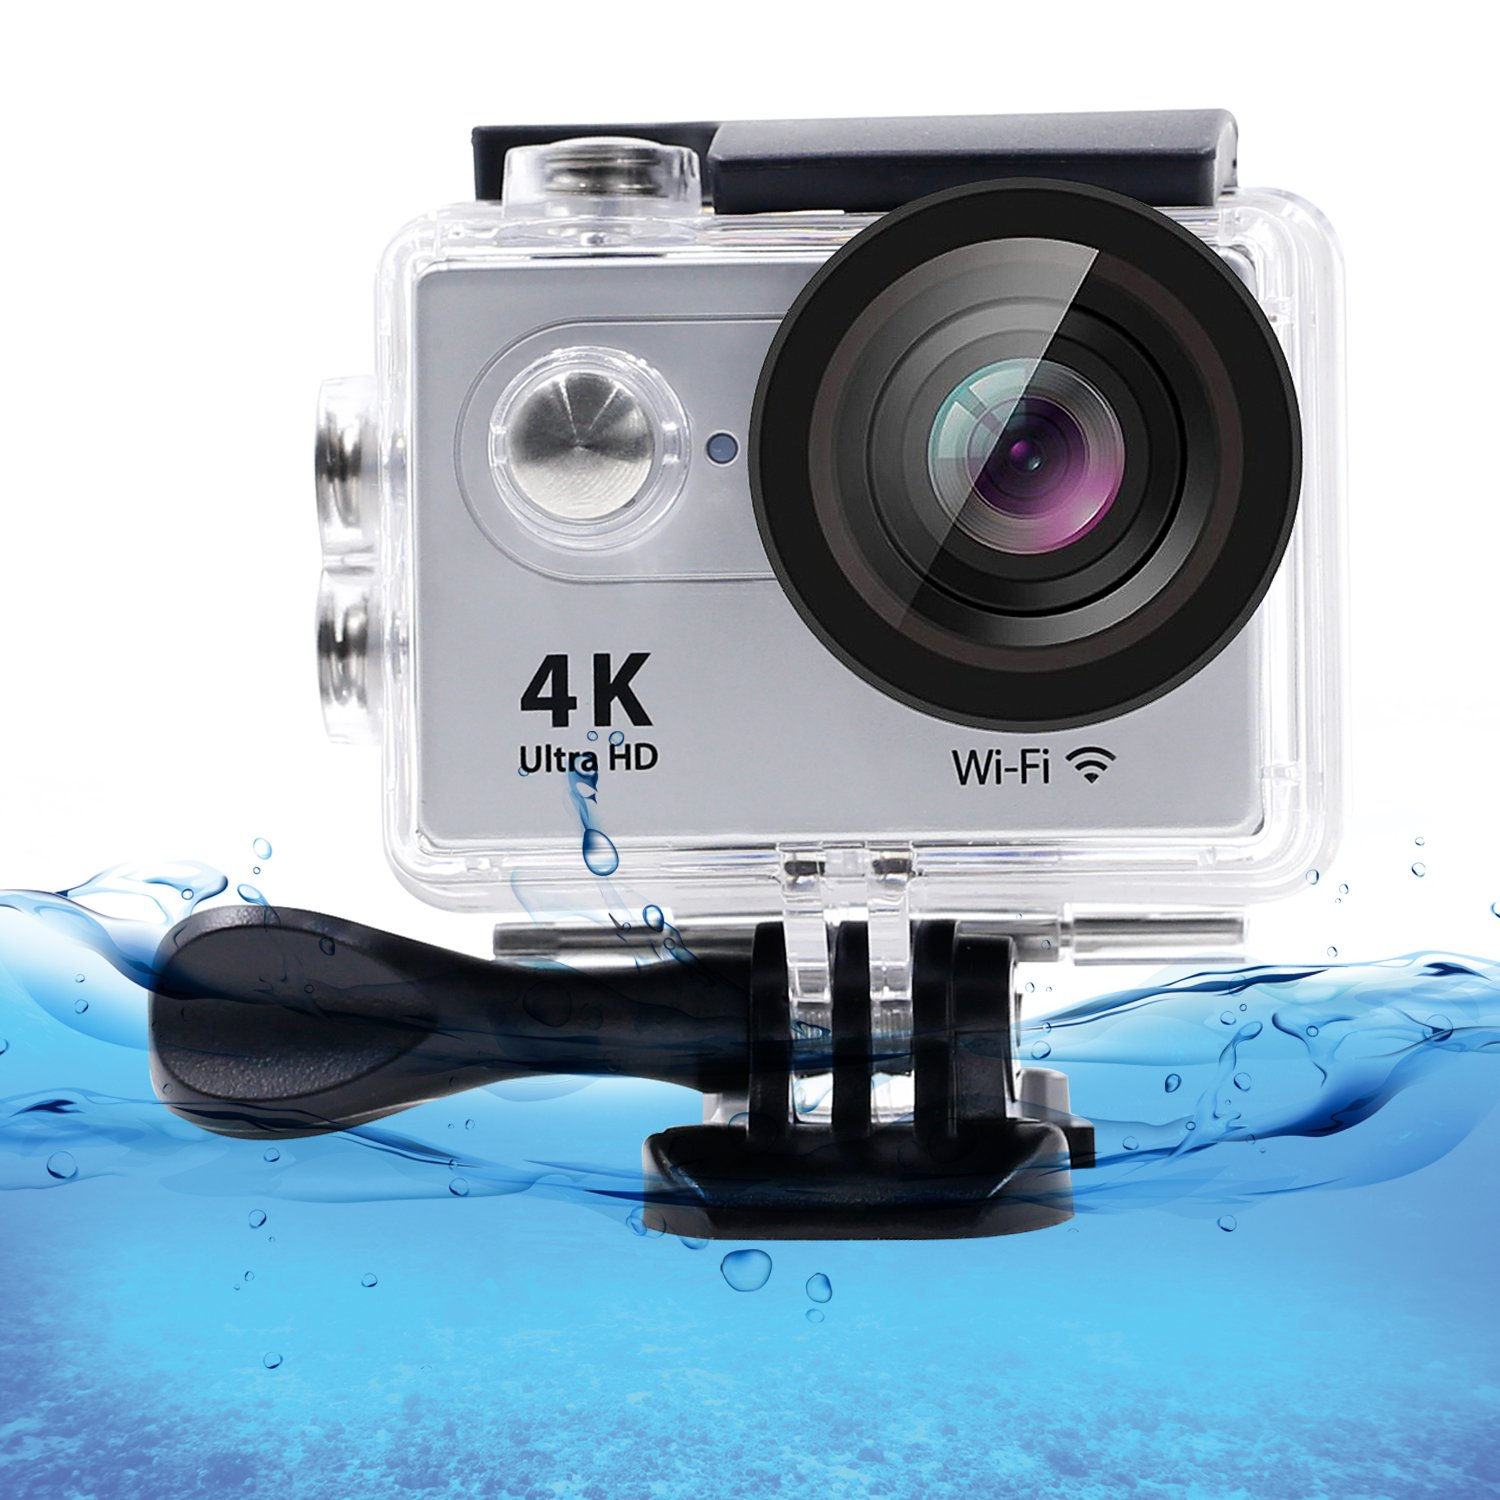 Eccbox 2 inch LCD Screen Sports Action Camera 4K 30fps Wifi Ultra HD Waterproof 12MP DV Camcorder with 170 Degree Wide Angle lens,Remote Control and 18 Mounting Kits included